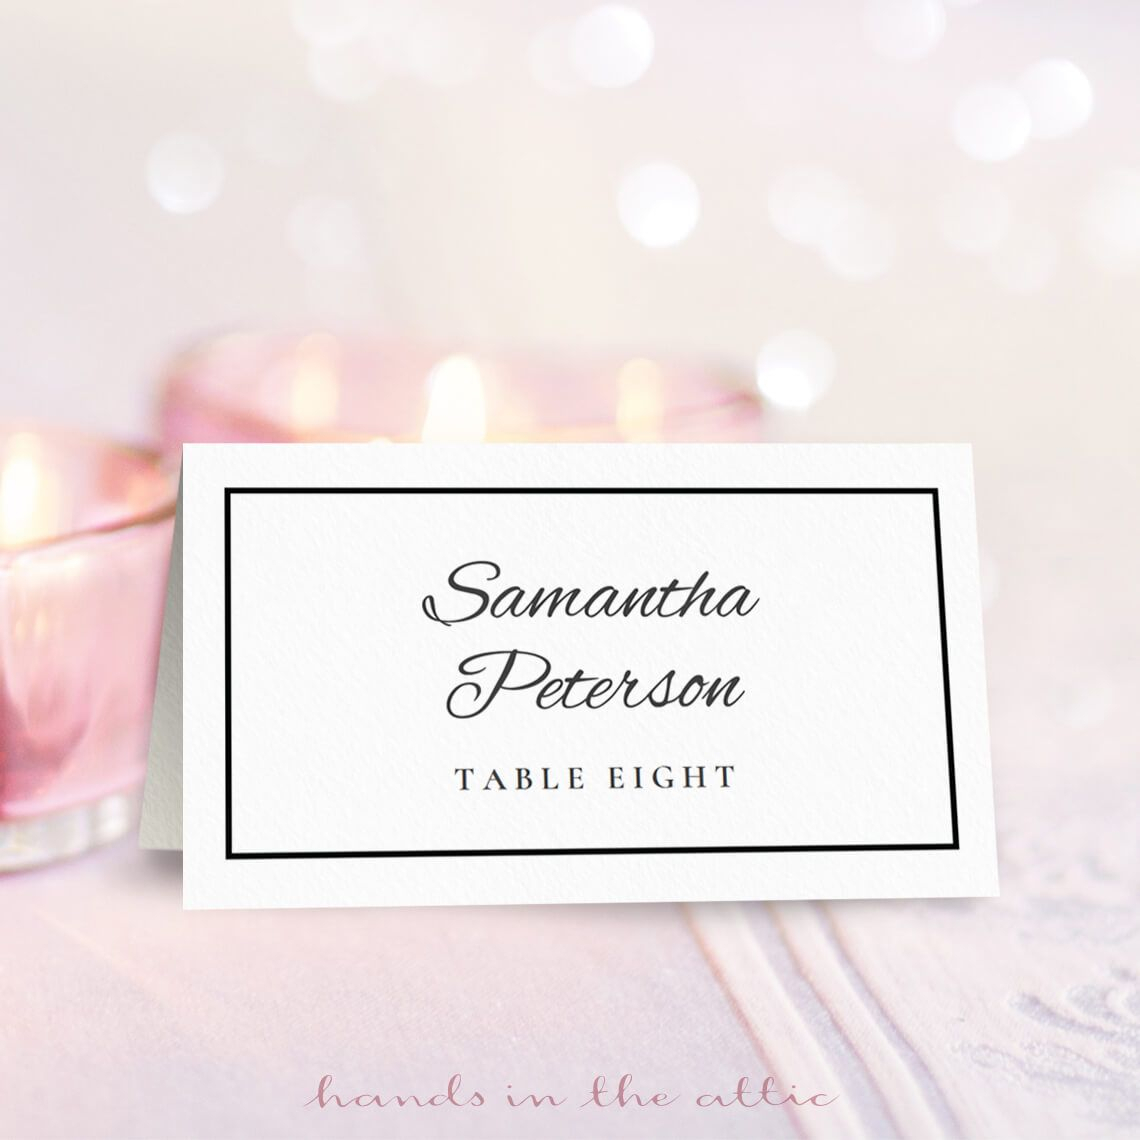 Wedding Place Card Template   Free On Handsintheattic For Free Place Card Templates Download